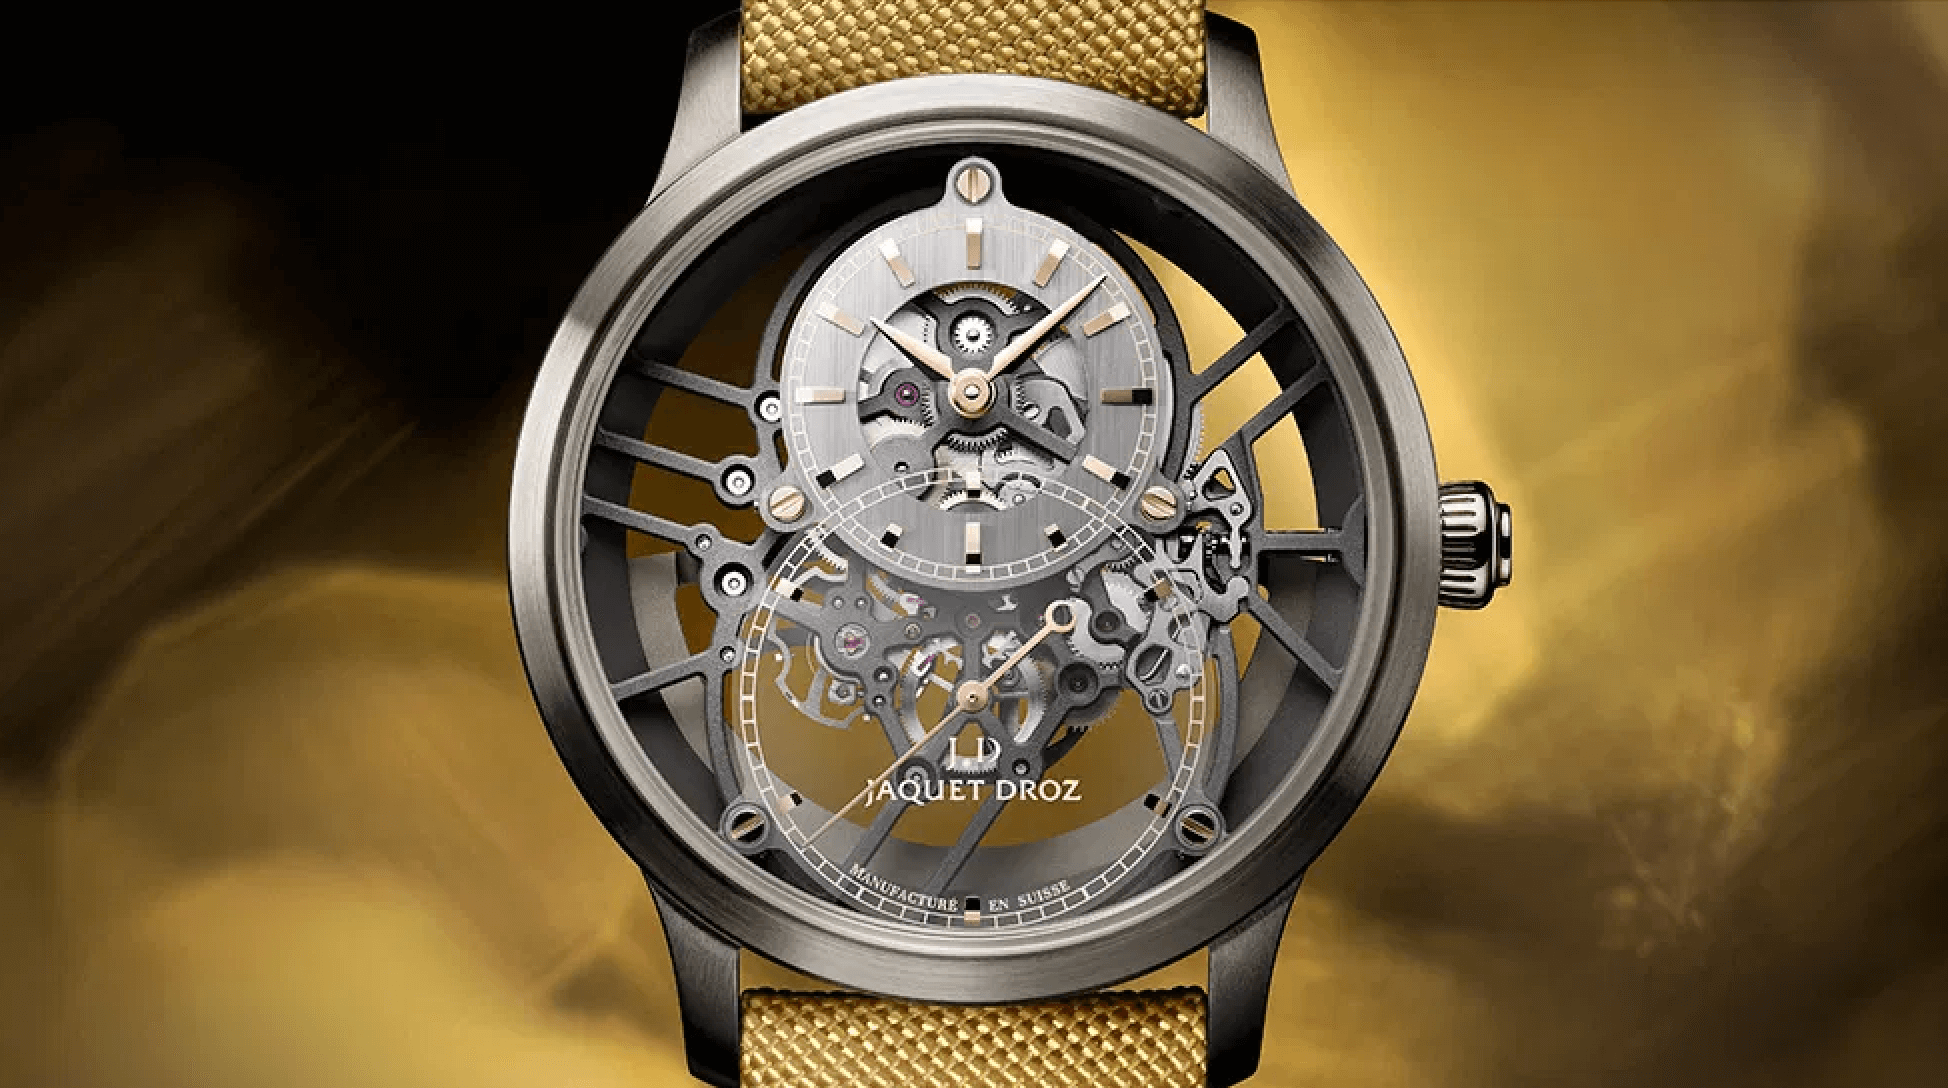 JAQUET DROZ GRANDE SECONDE SKELET-ONE TRİO saat fotoğraf